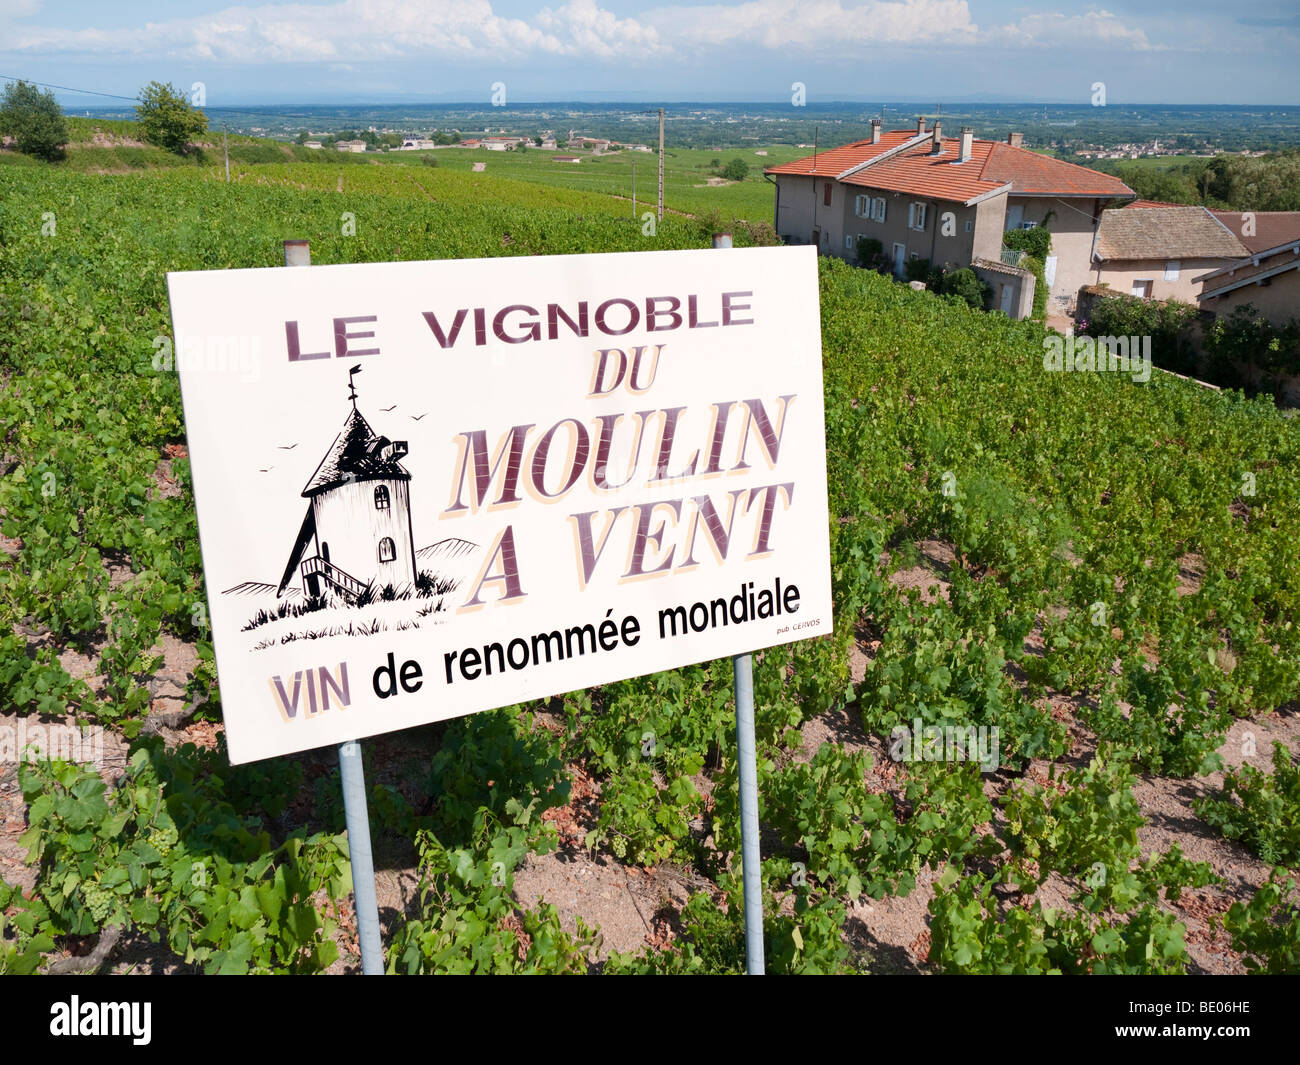 A signboard in a vineyard advertises the renowned Beaujolais wine of Moulin à Vent. - Stock Image